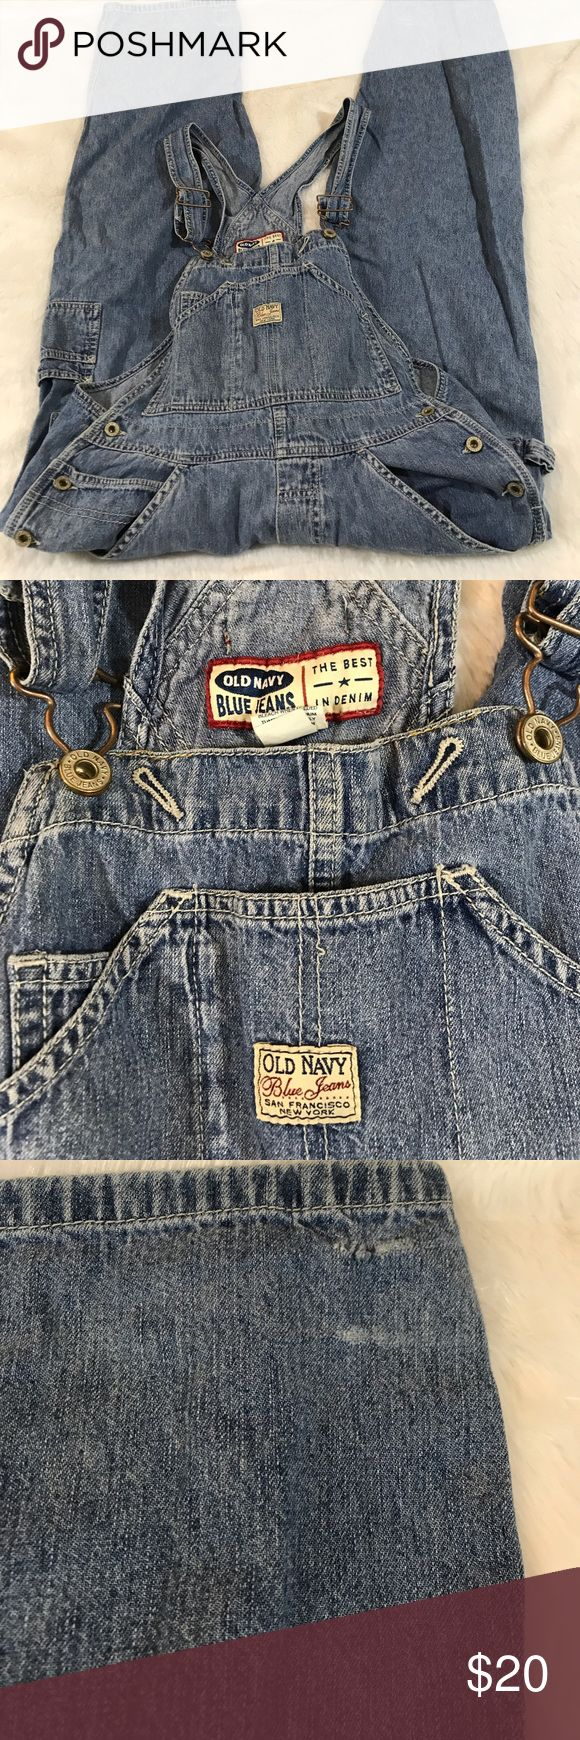 """Old Navy Denim Jean Overalls Small Women's Small Old Navy Overalls in good used condition. Adjustable straps, the only flaw I see is in the back of the legs (in pictures) the Denim is wearing. Inseam: 28"""" waist: 17.25"""" (A) Old Navy Pants Jumpsuits & Rompers"""